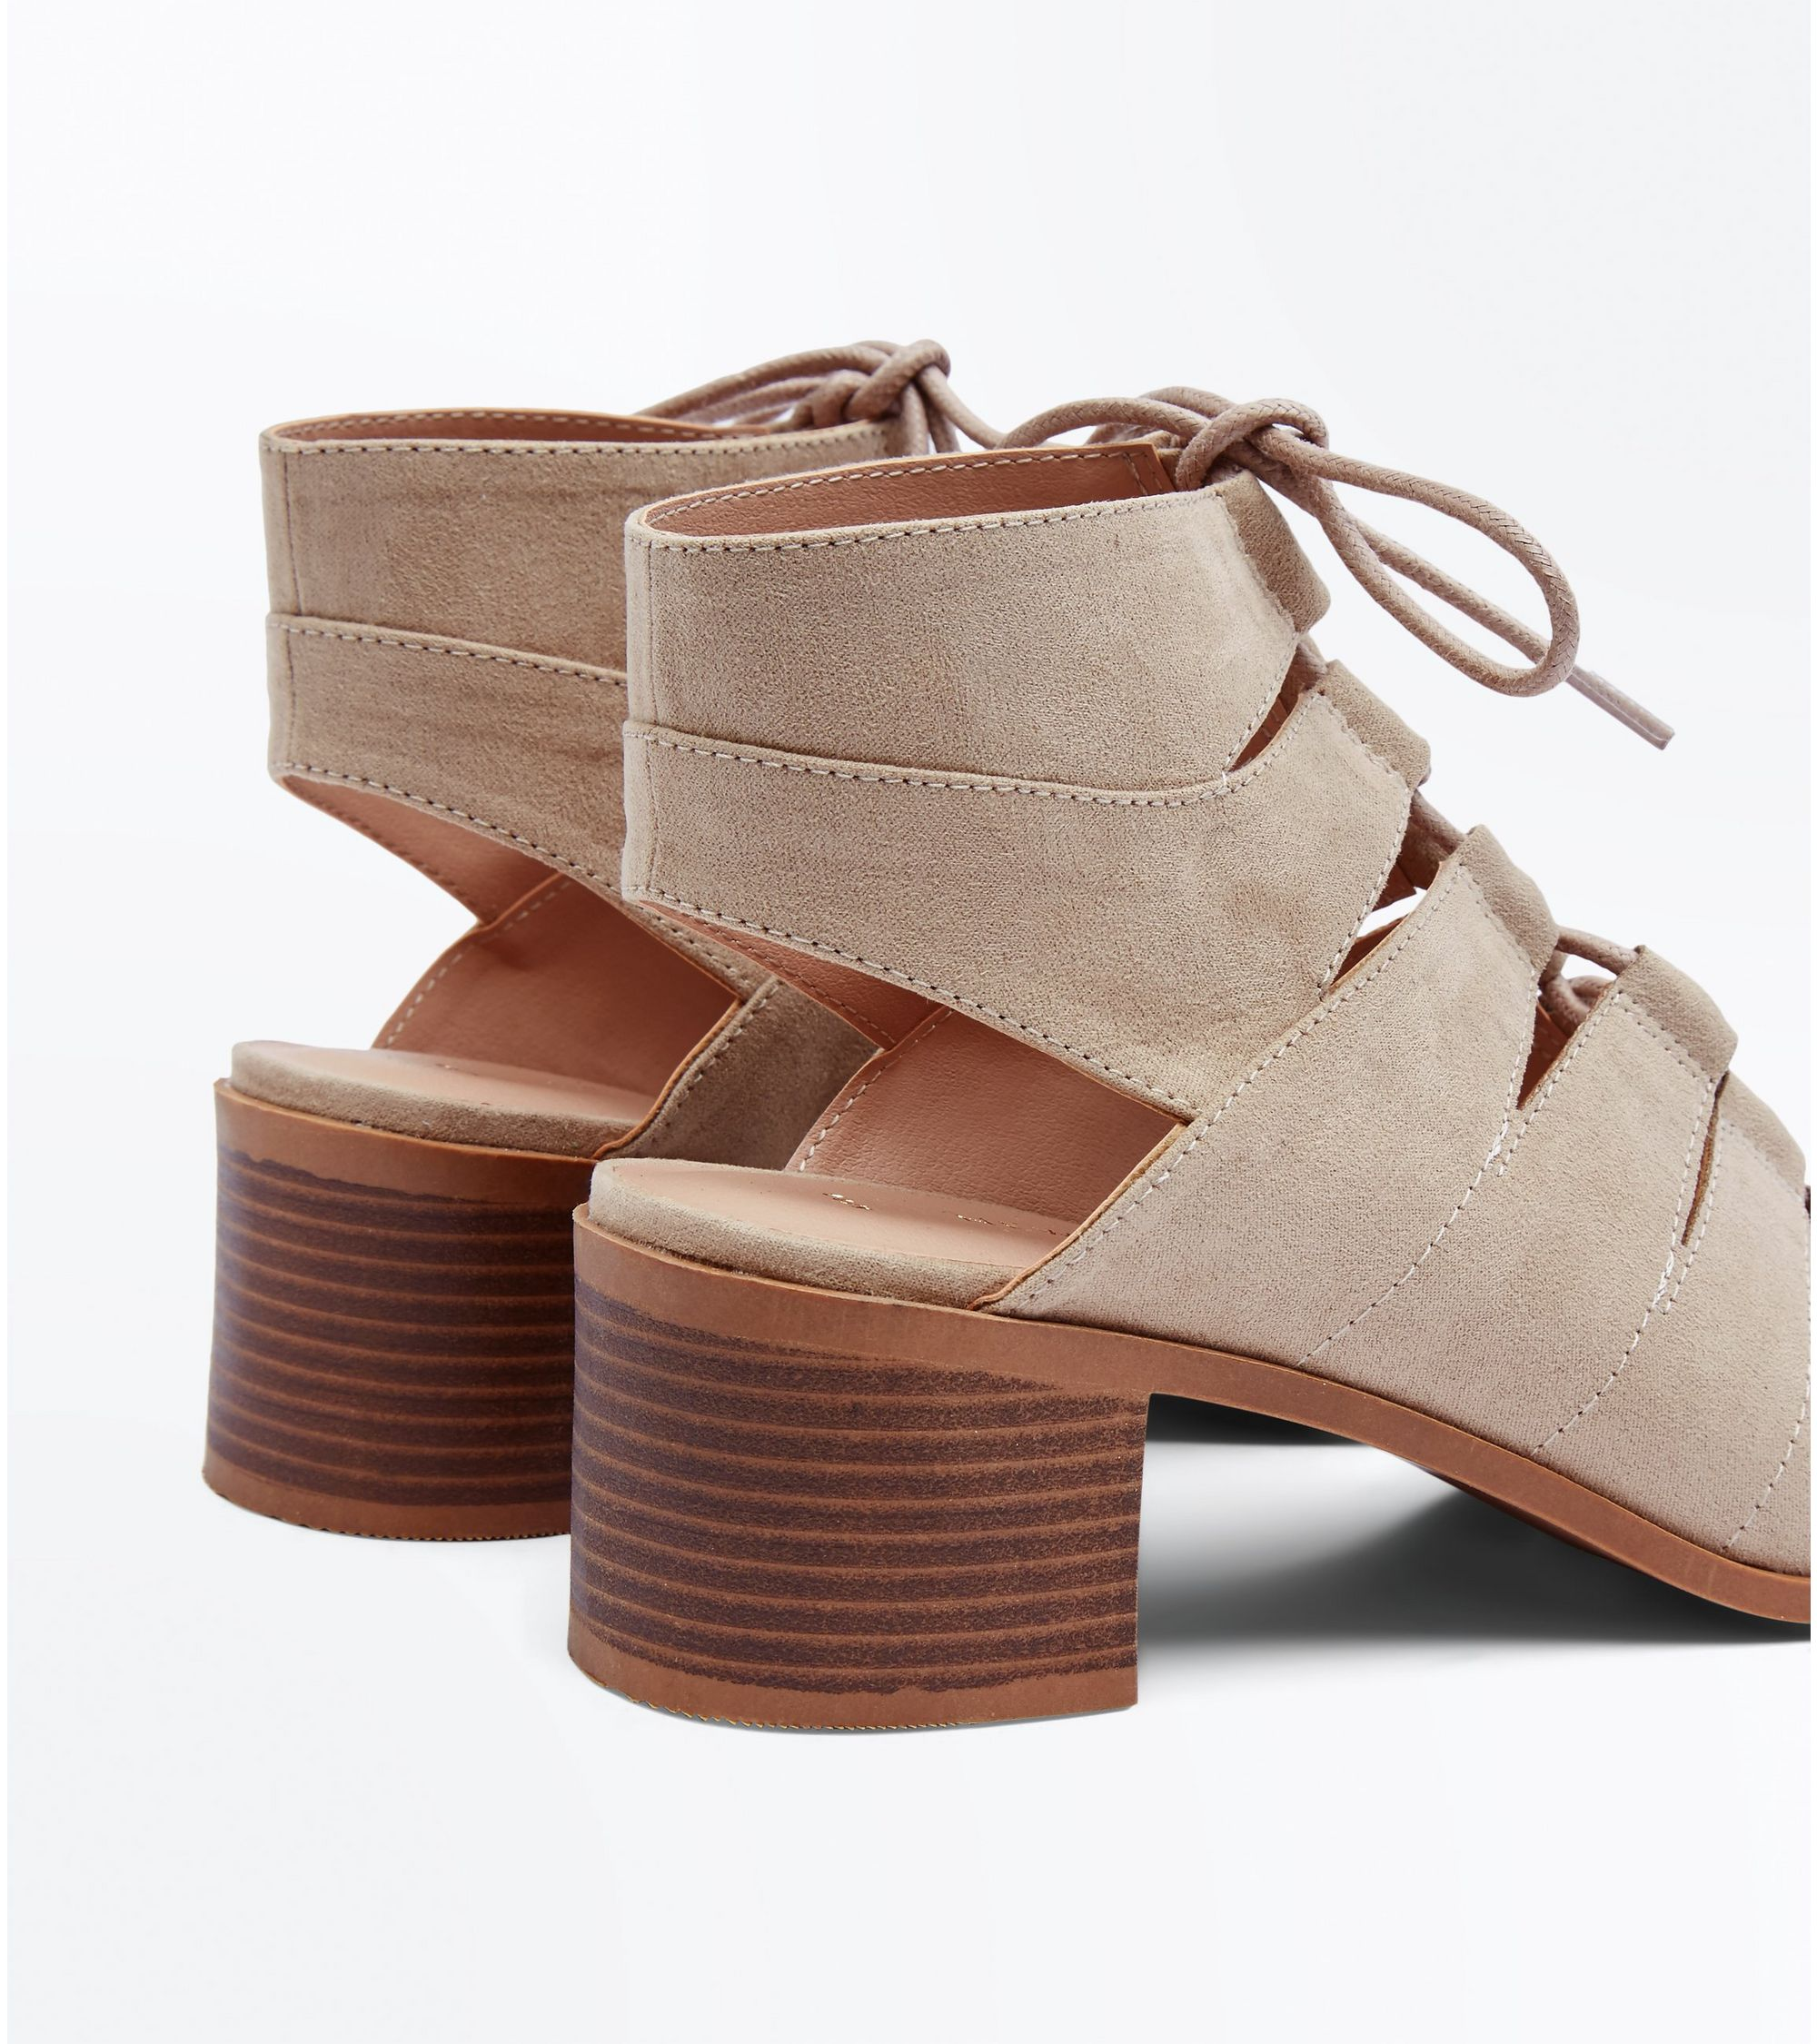 dc86bd8a0483 New Look Light Brown Suedette Low Block Heel Ghillie Sandals at ...